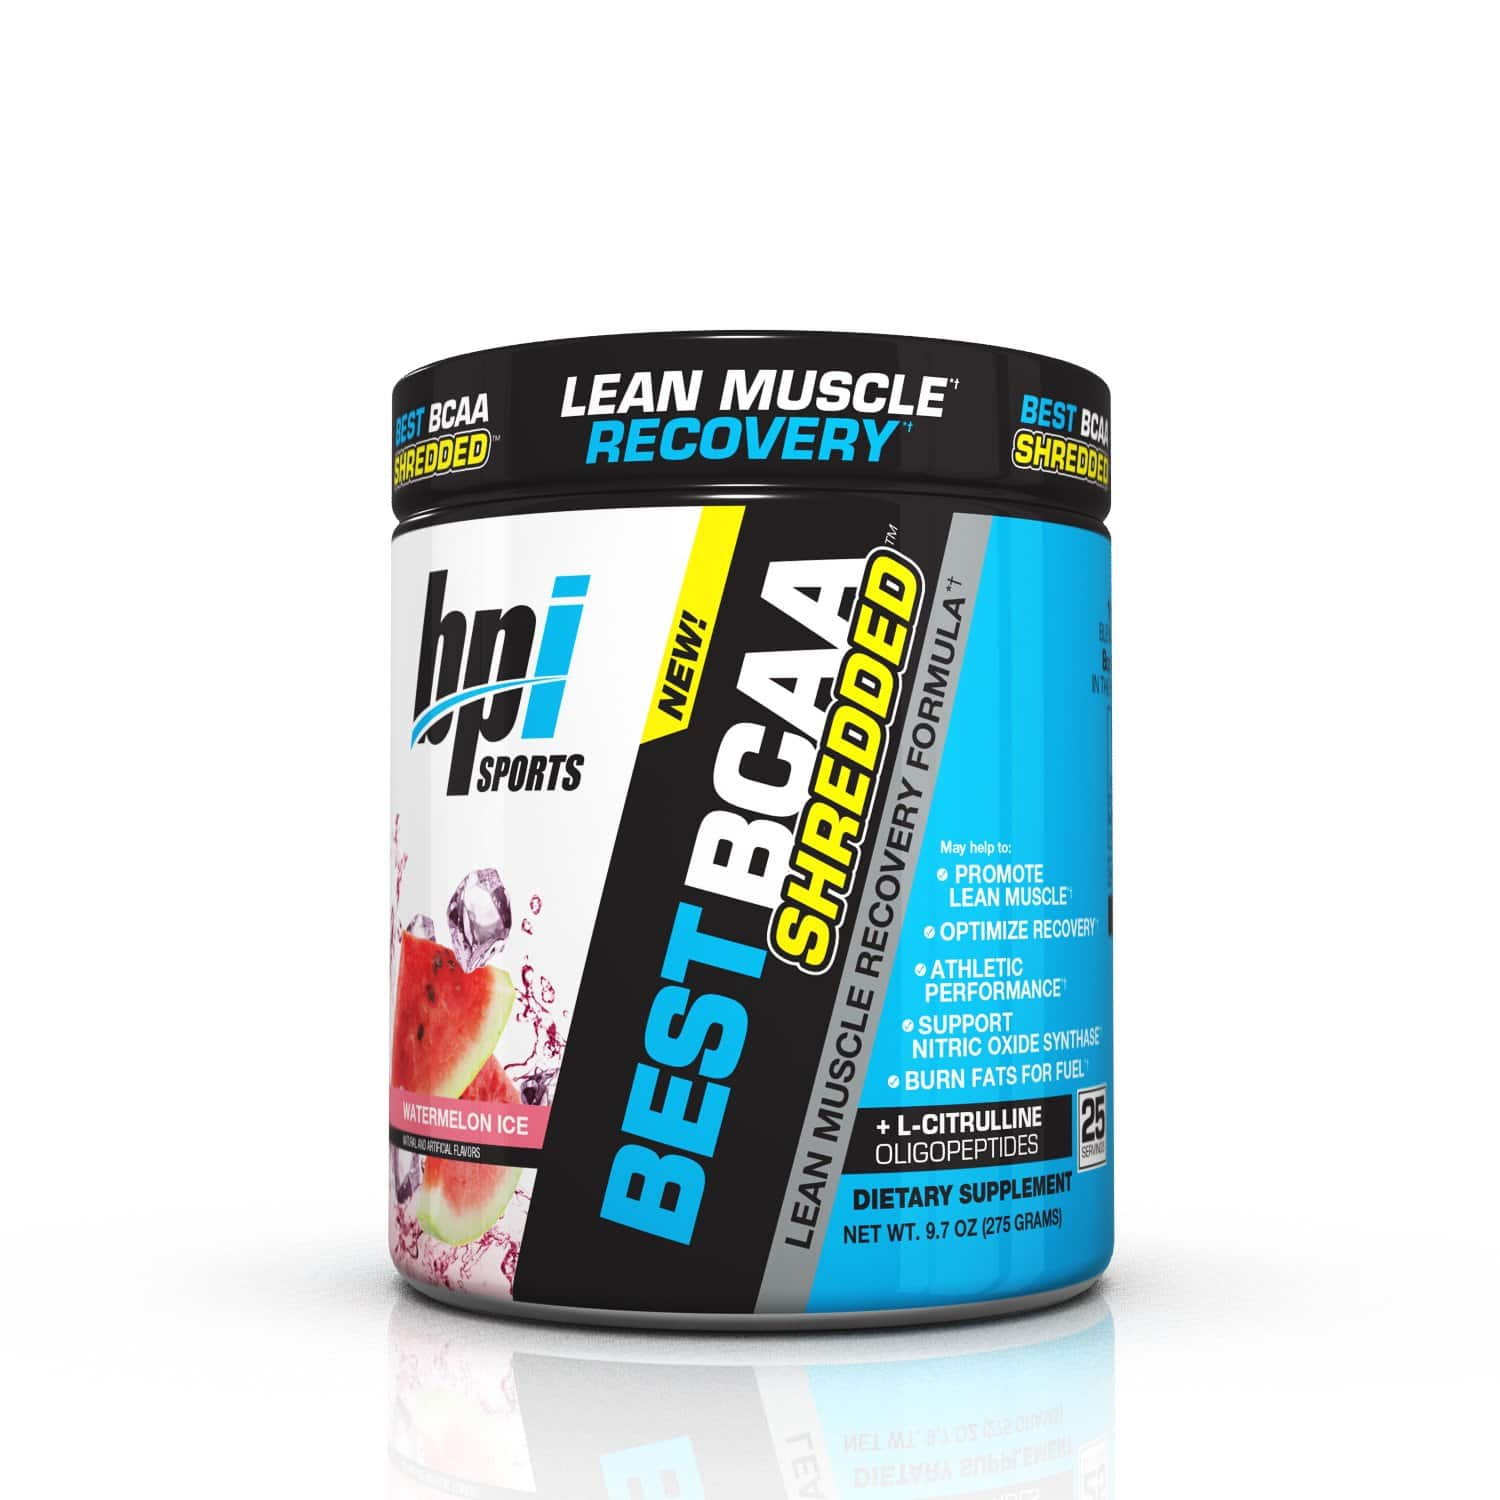 BPI Sports Best BCAA Powder, 10.58 Ounce Deal of the Day $12.30 Watermelon Ice